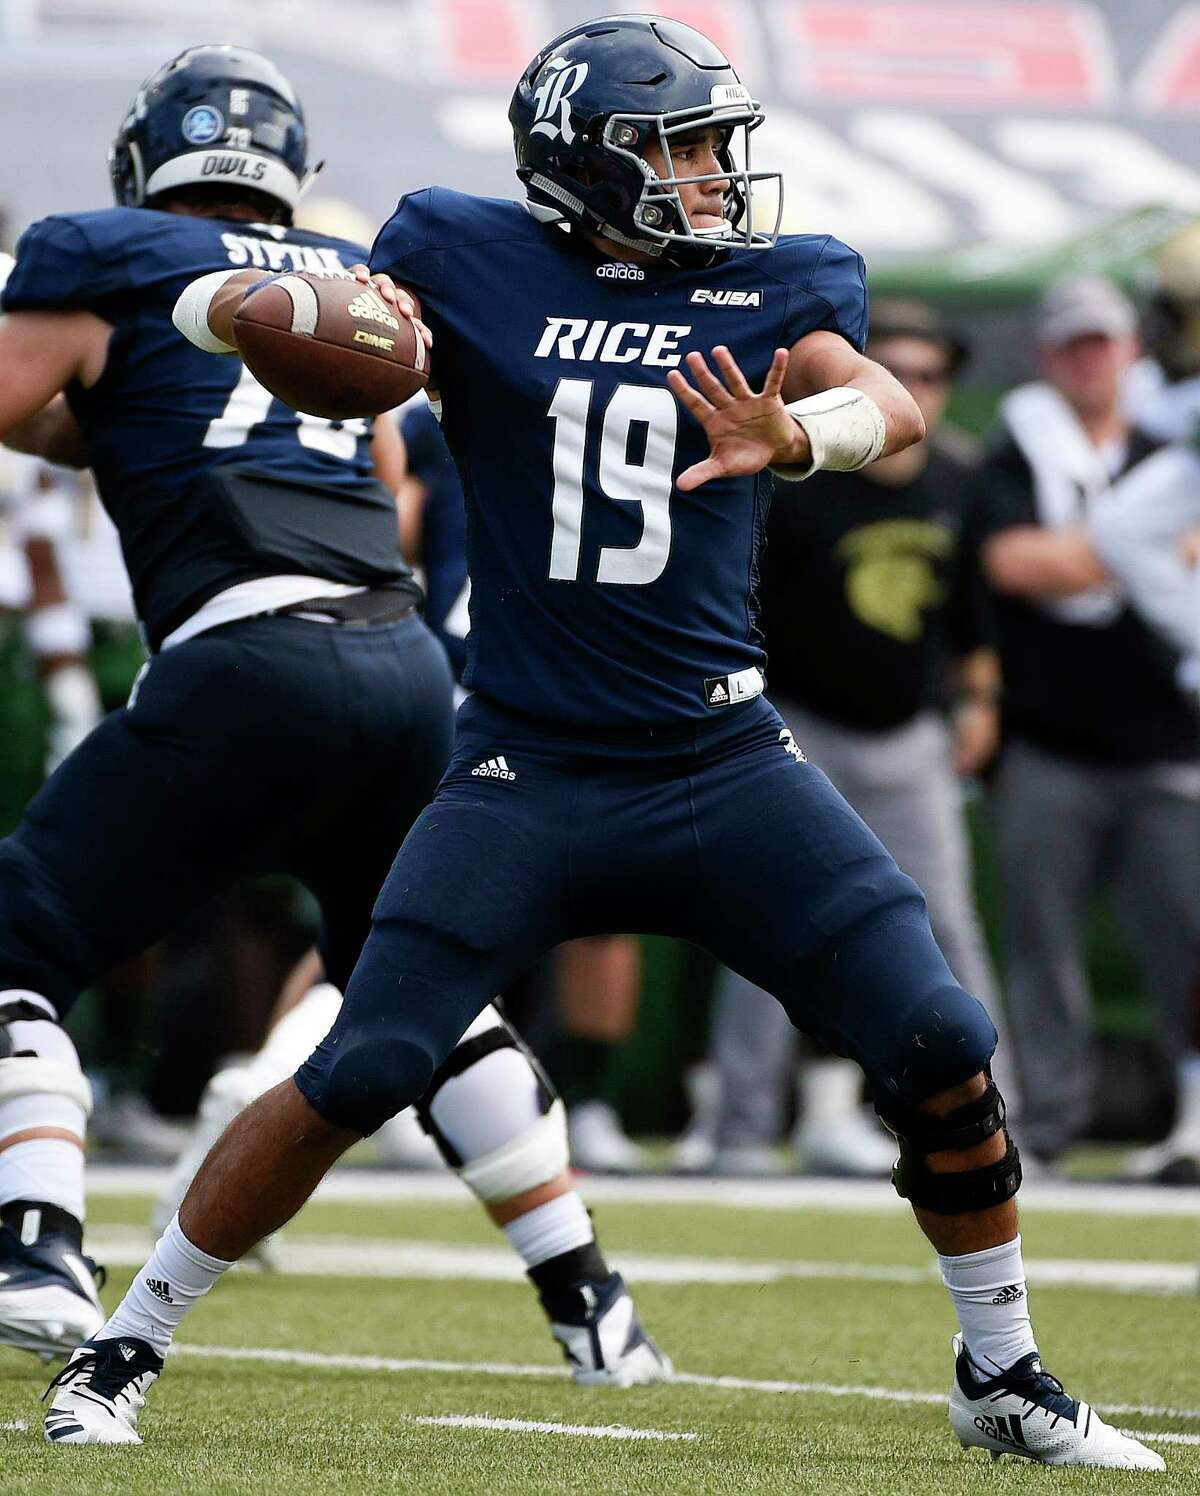 Rice quarterback Evan Marshman drops back to pass during the second half of an NCAA college football game against UAB, Saturday, Oct. 13, 2018, in Houston.